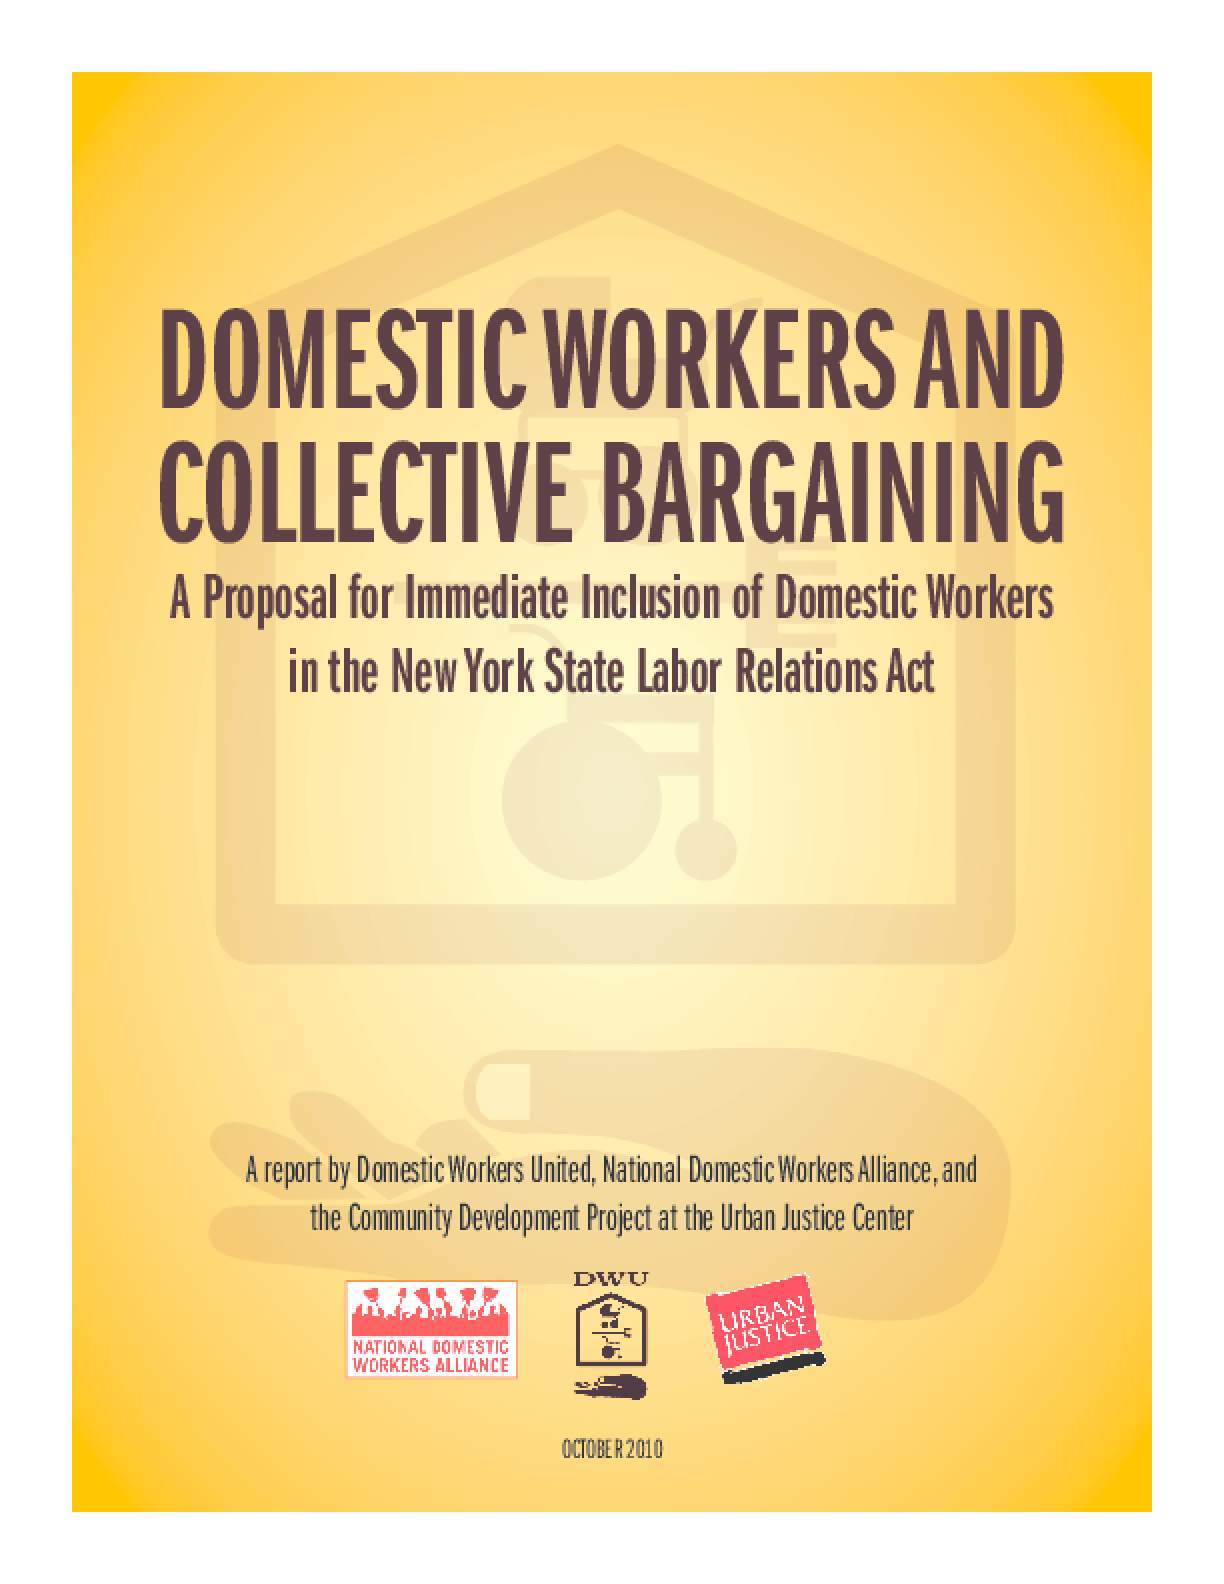 Domestic Workers and Collective Bargaining: A Proposal for Immediate Inclusion of Domestic Workers in the New York State Labor Relations Act